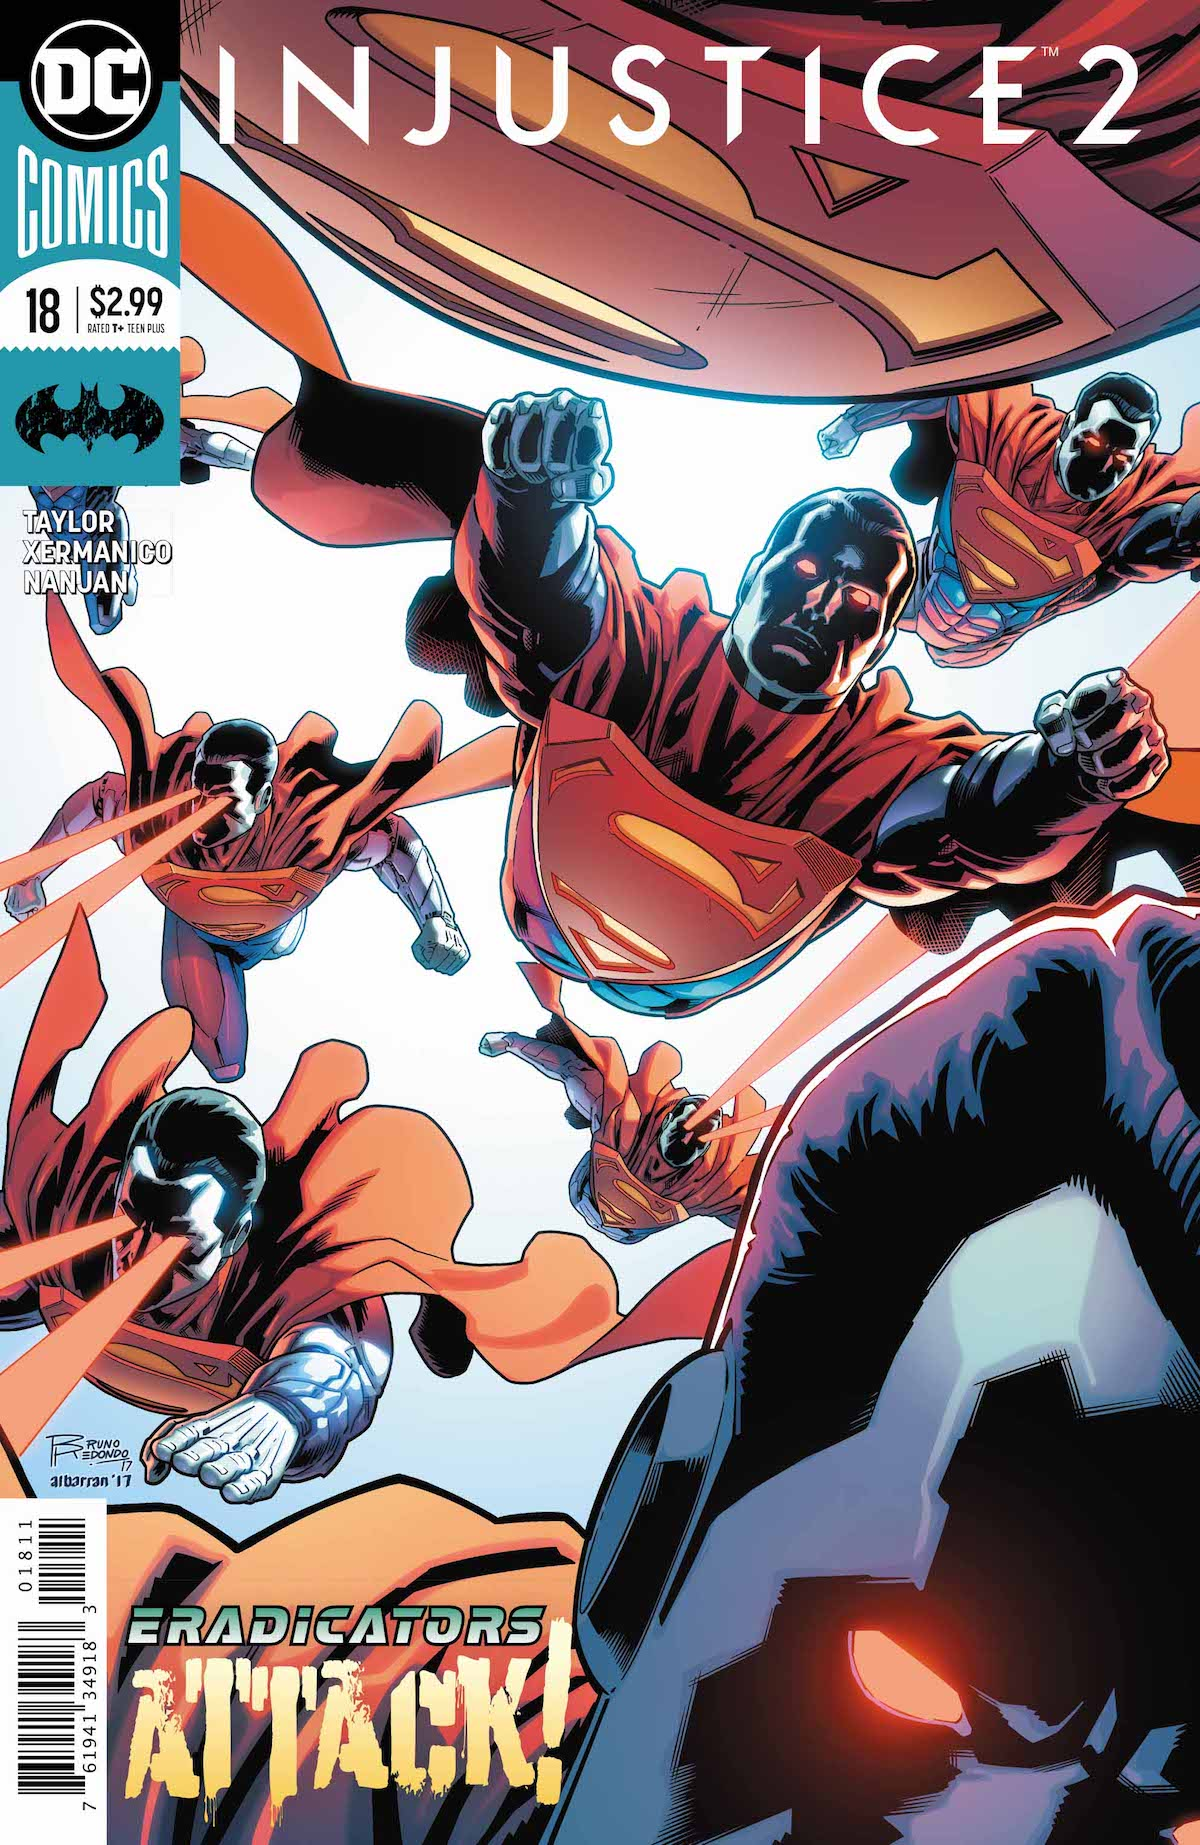 Injustice2 #18 cover